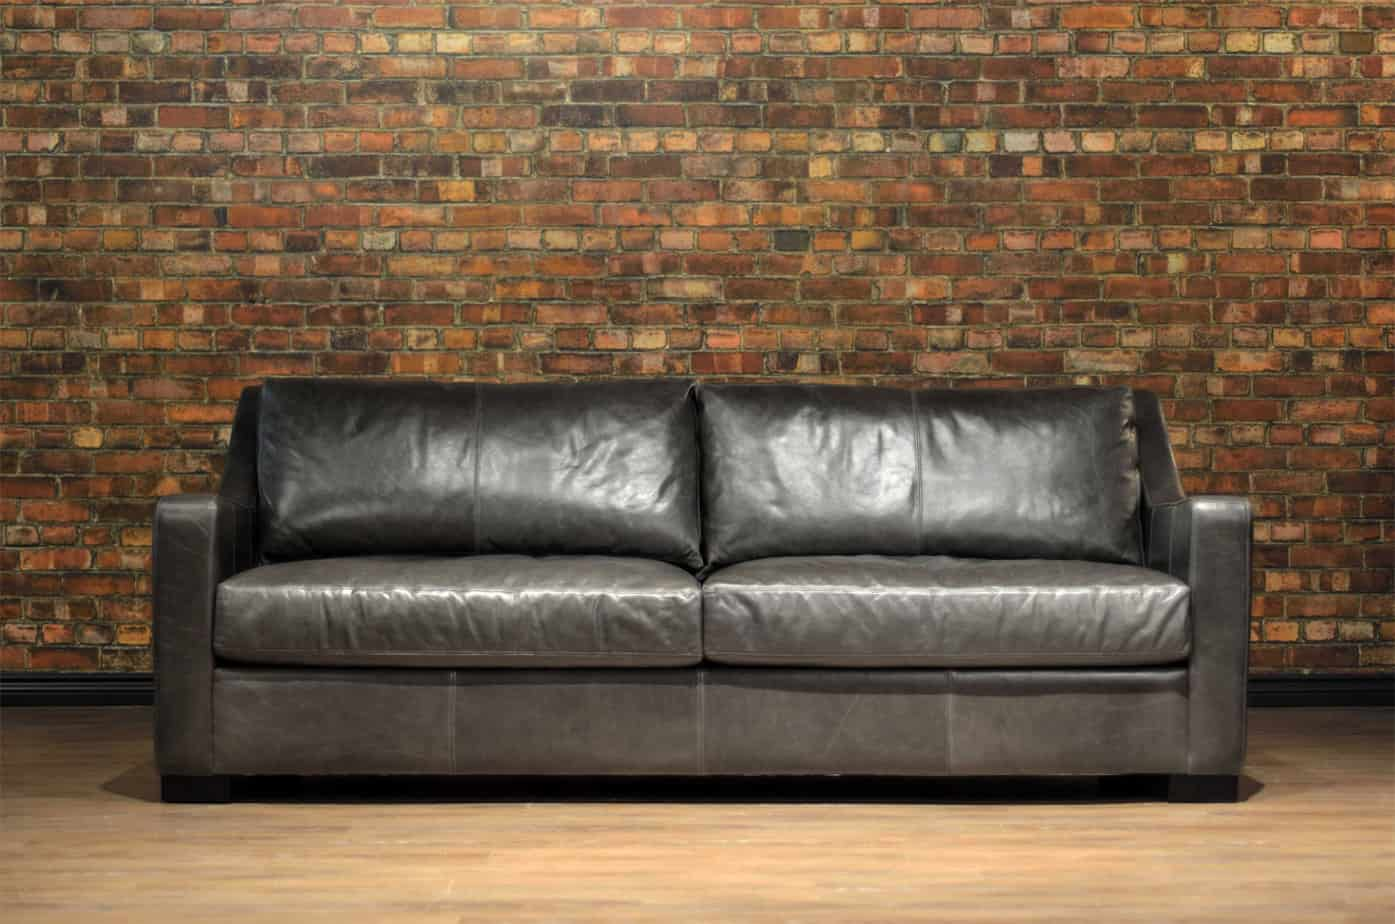 Leather sofa sectional choose color leather size for Leather sectional sofa sale toronto